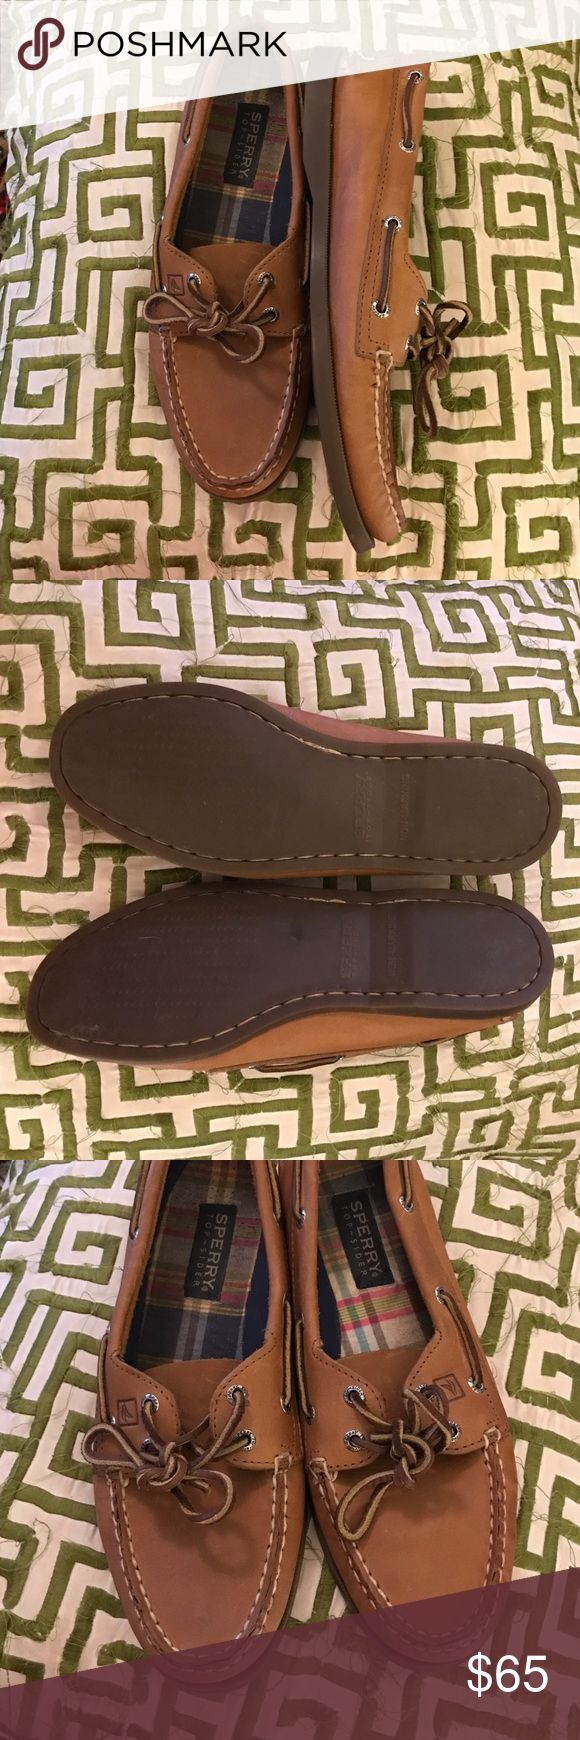 Sperry Top-Sider Shoes! Sperry Top-Sider Shoes! Only worn a handful of times! Women's size 8.5! Sperry Top-Sider Shoes Flats & Loafers